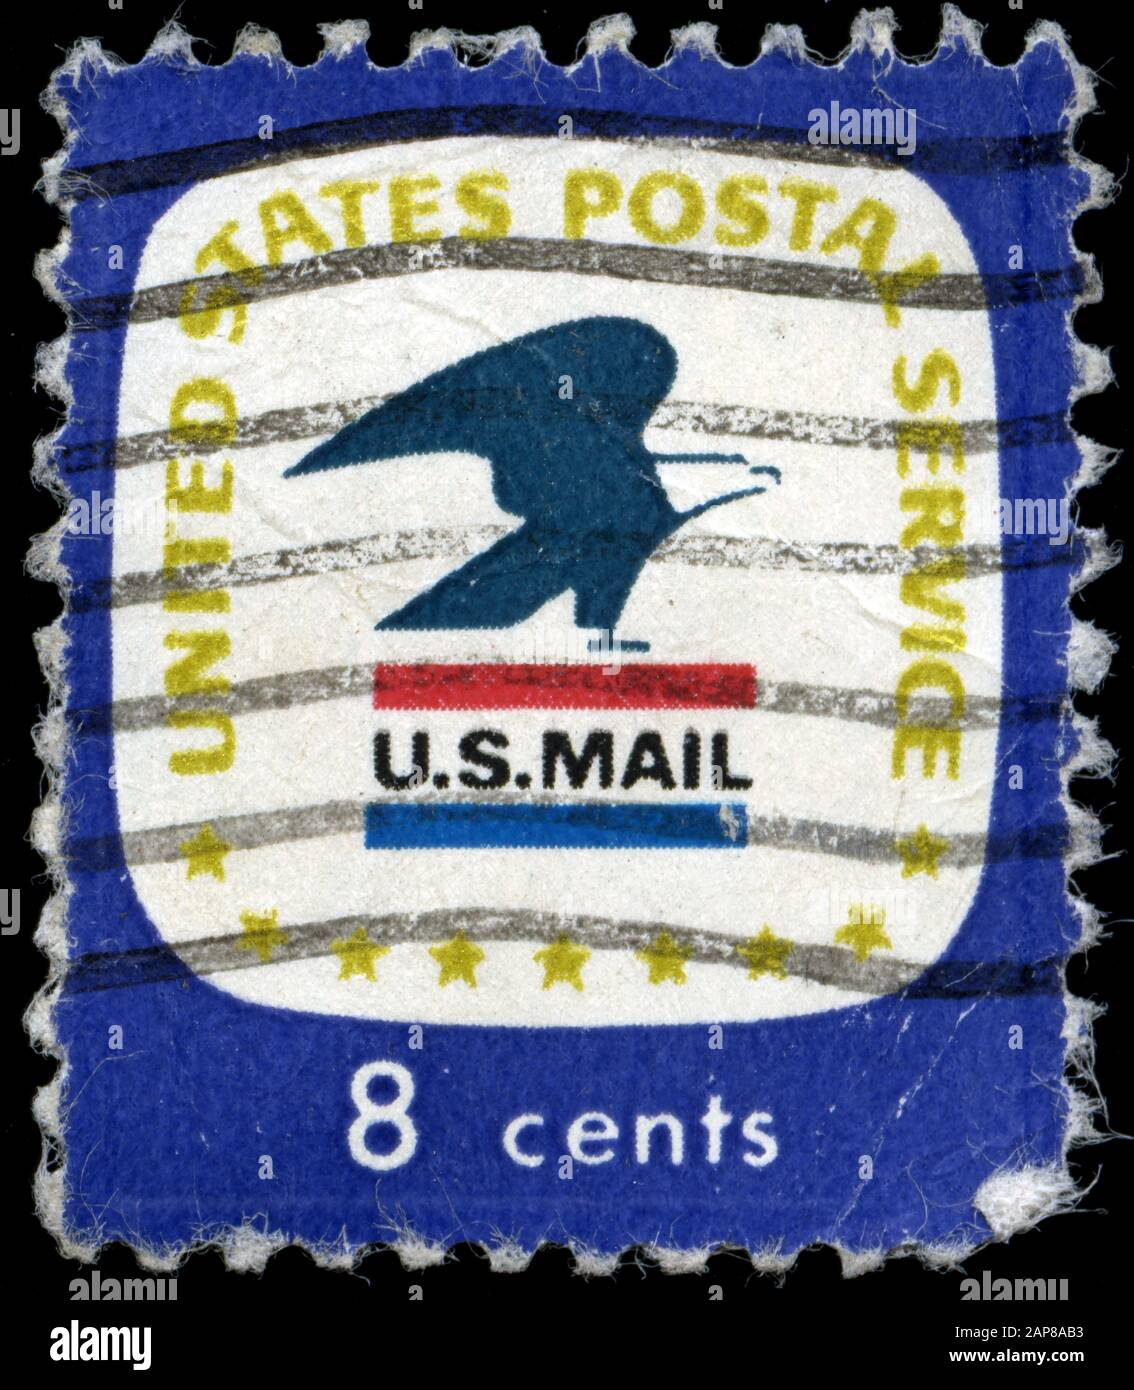 U S Postal Service High Resolution Stock Photography And Images